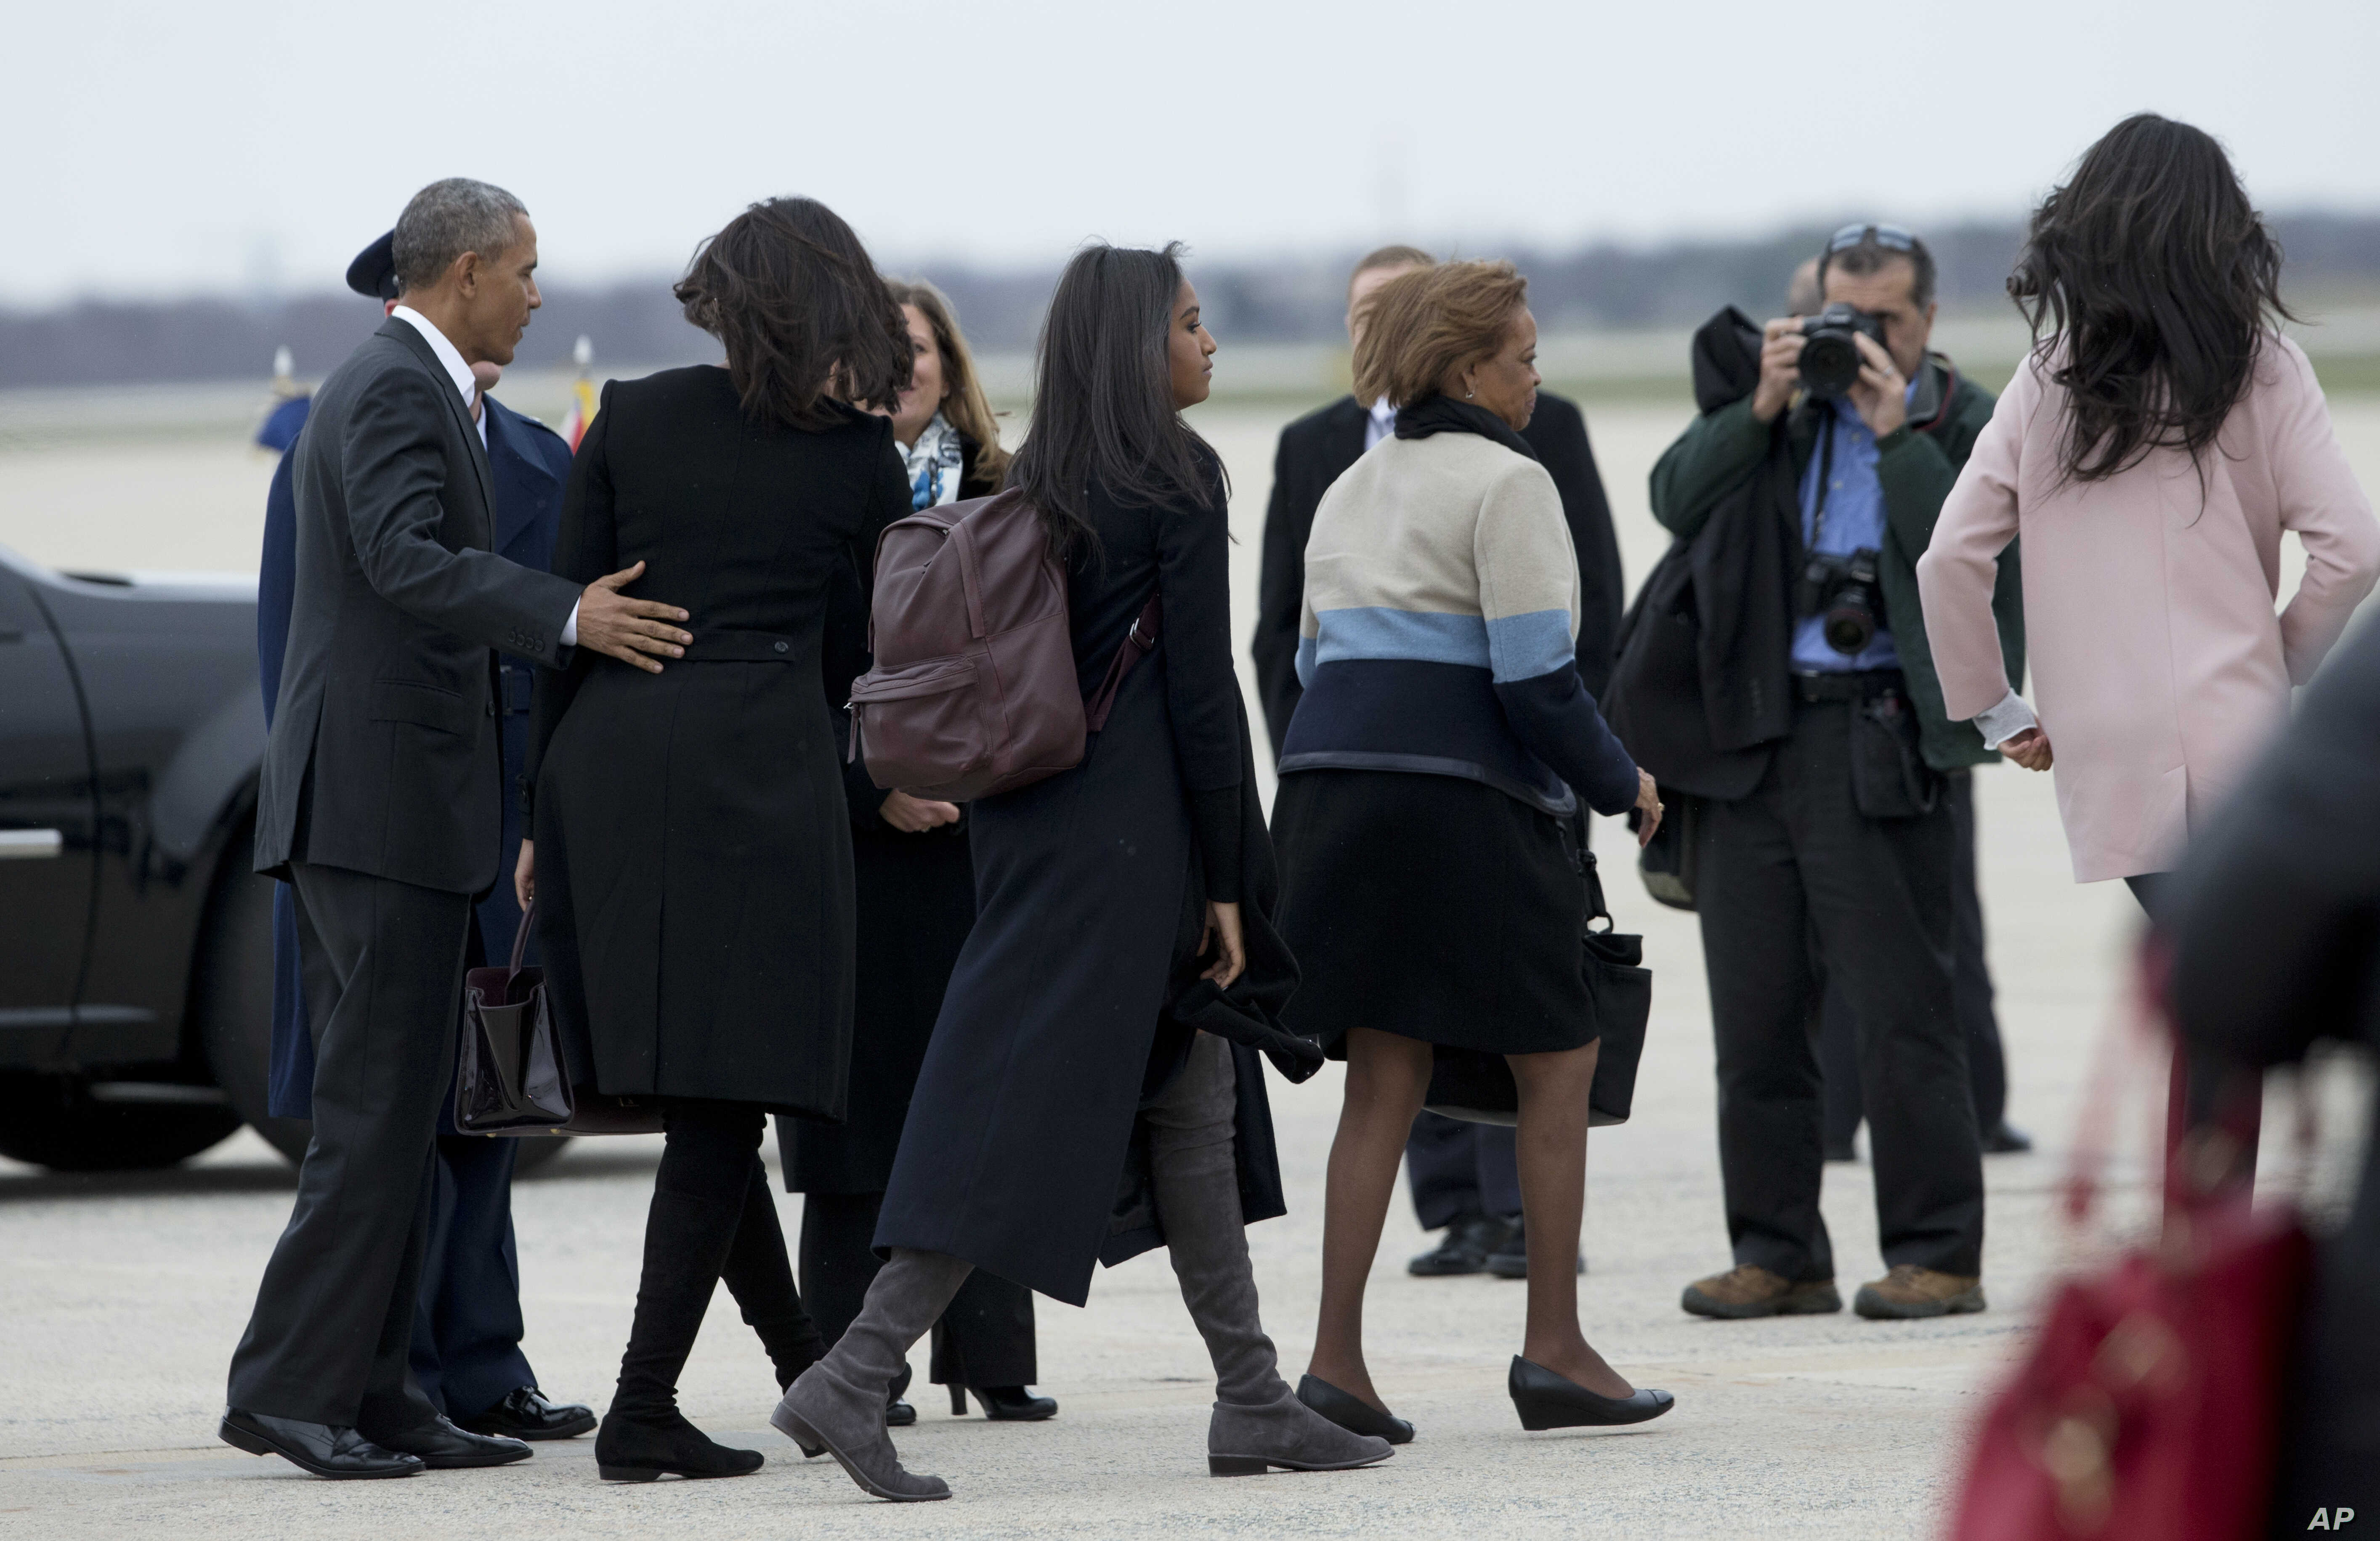 The first family, from left, President Barack Obama, Michelle Obama, their daughters Sasha and Malia, and mother-in-law Marian Robinson, fourth from left, walk to board the Air Force One for a trip Havana, Cuba, March 20, 2016.